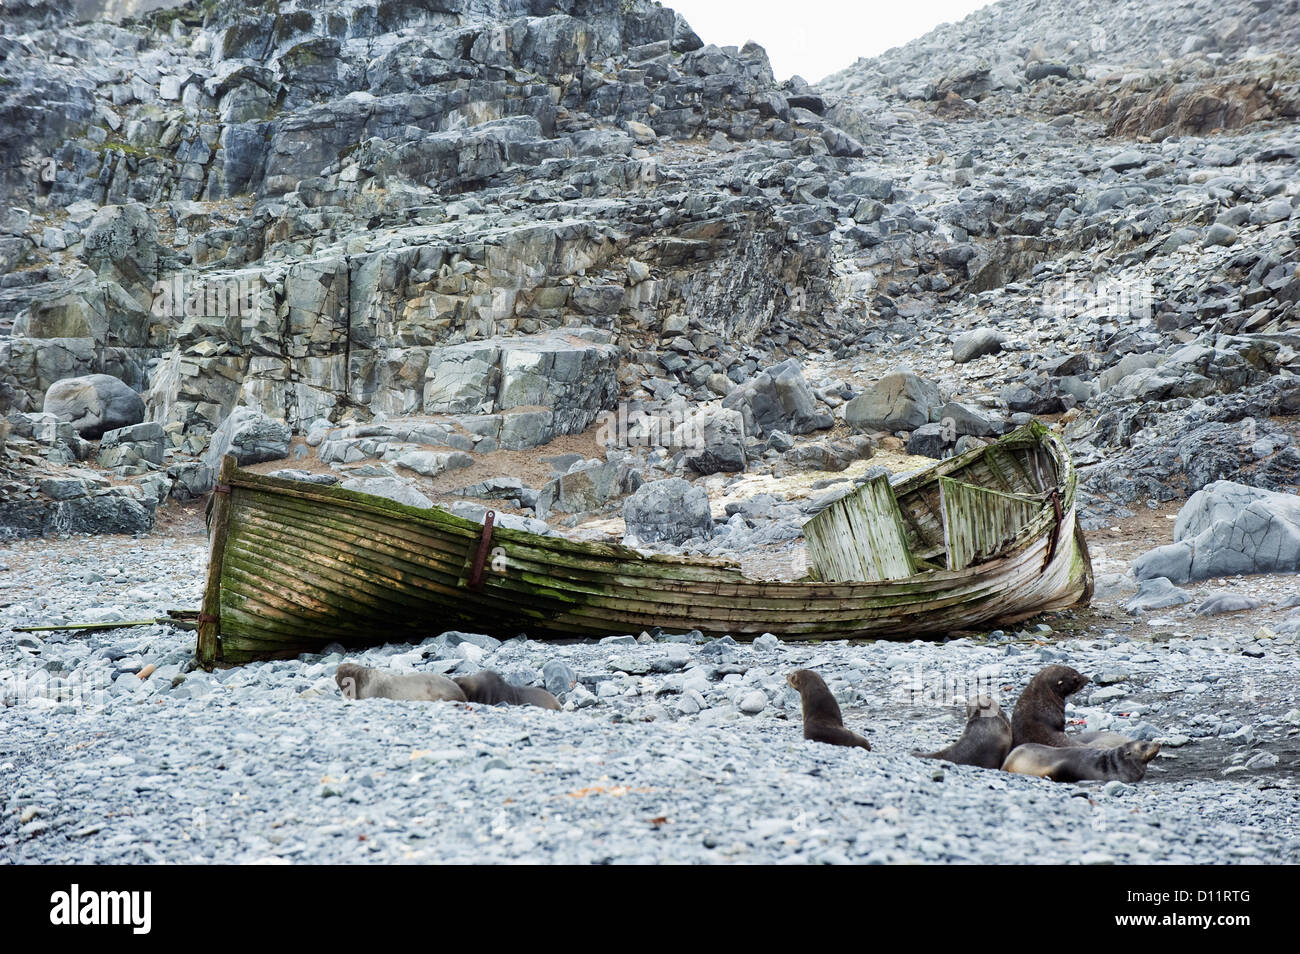 A Broken Abandoned Wooden Boat On The Shore; Antarctica - Stock Image